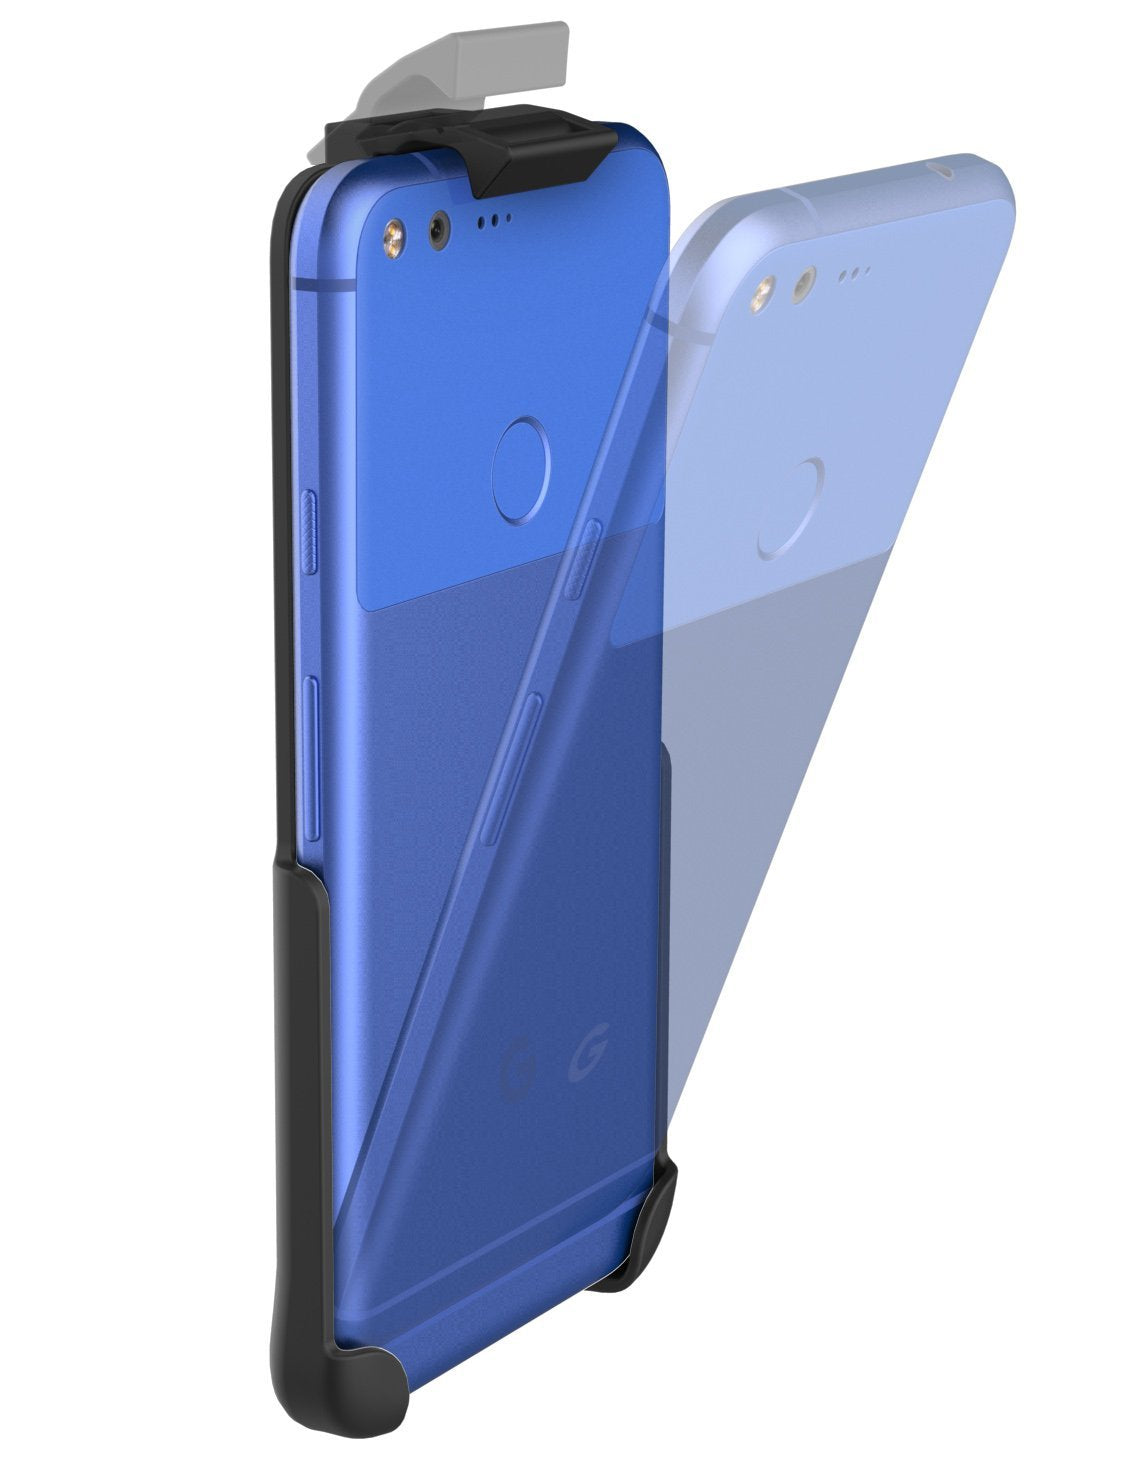 Belt Clip Holster for Google Pixel (5.0) By Encased (case free design)